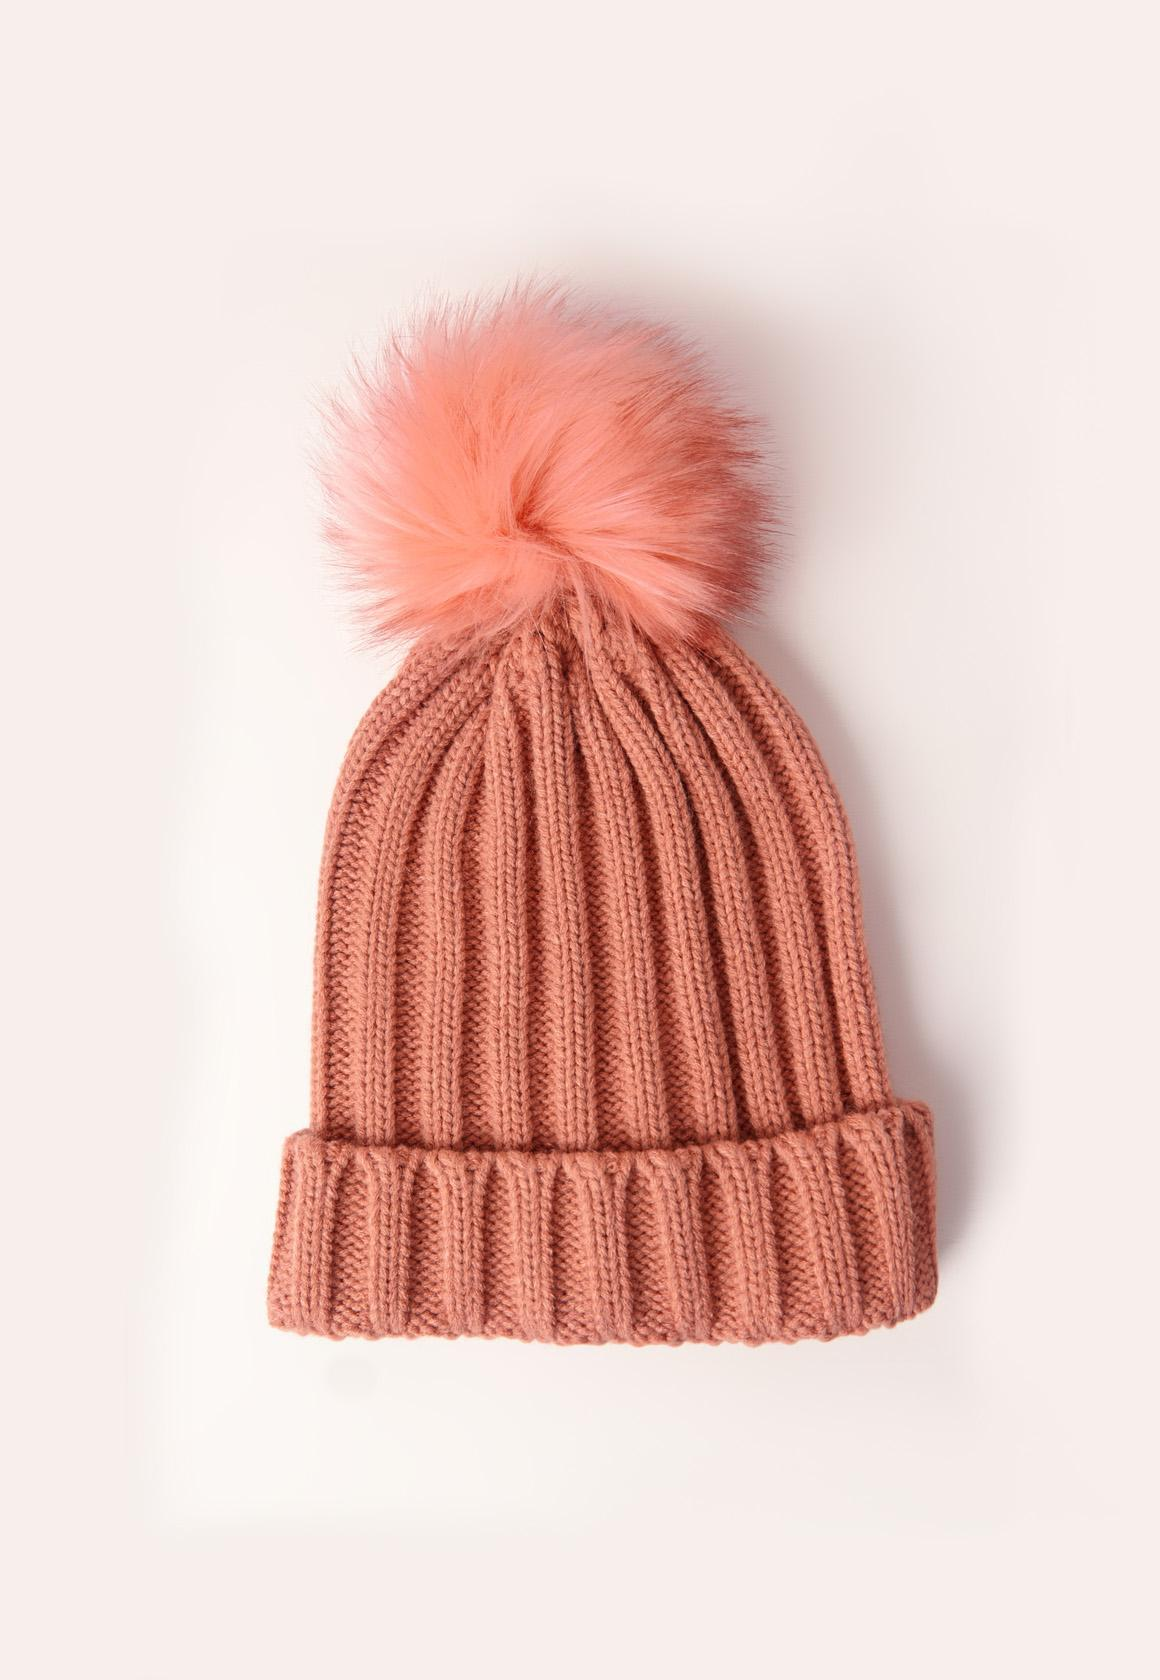 Lyst - Missguided Pink Faux Fur Pom Pom Beanie in Pink 0d0115a7f7de